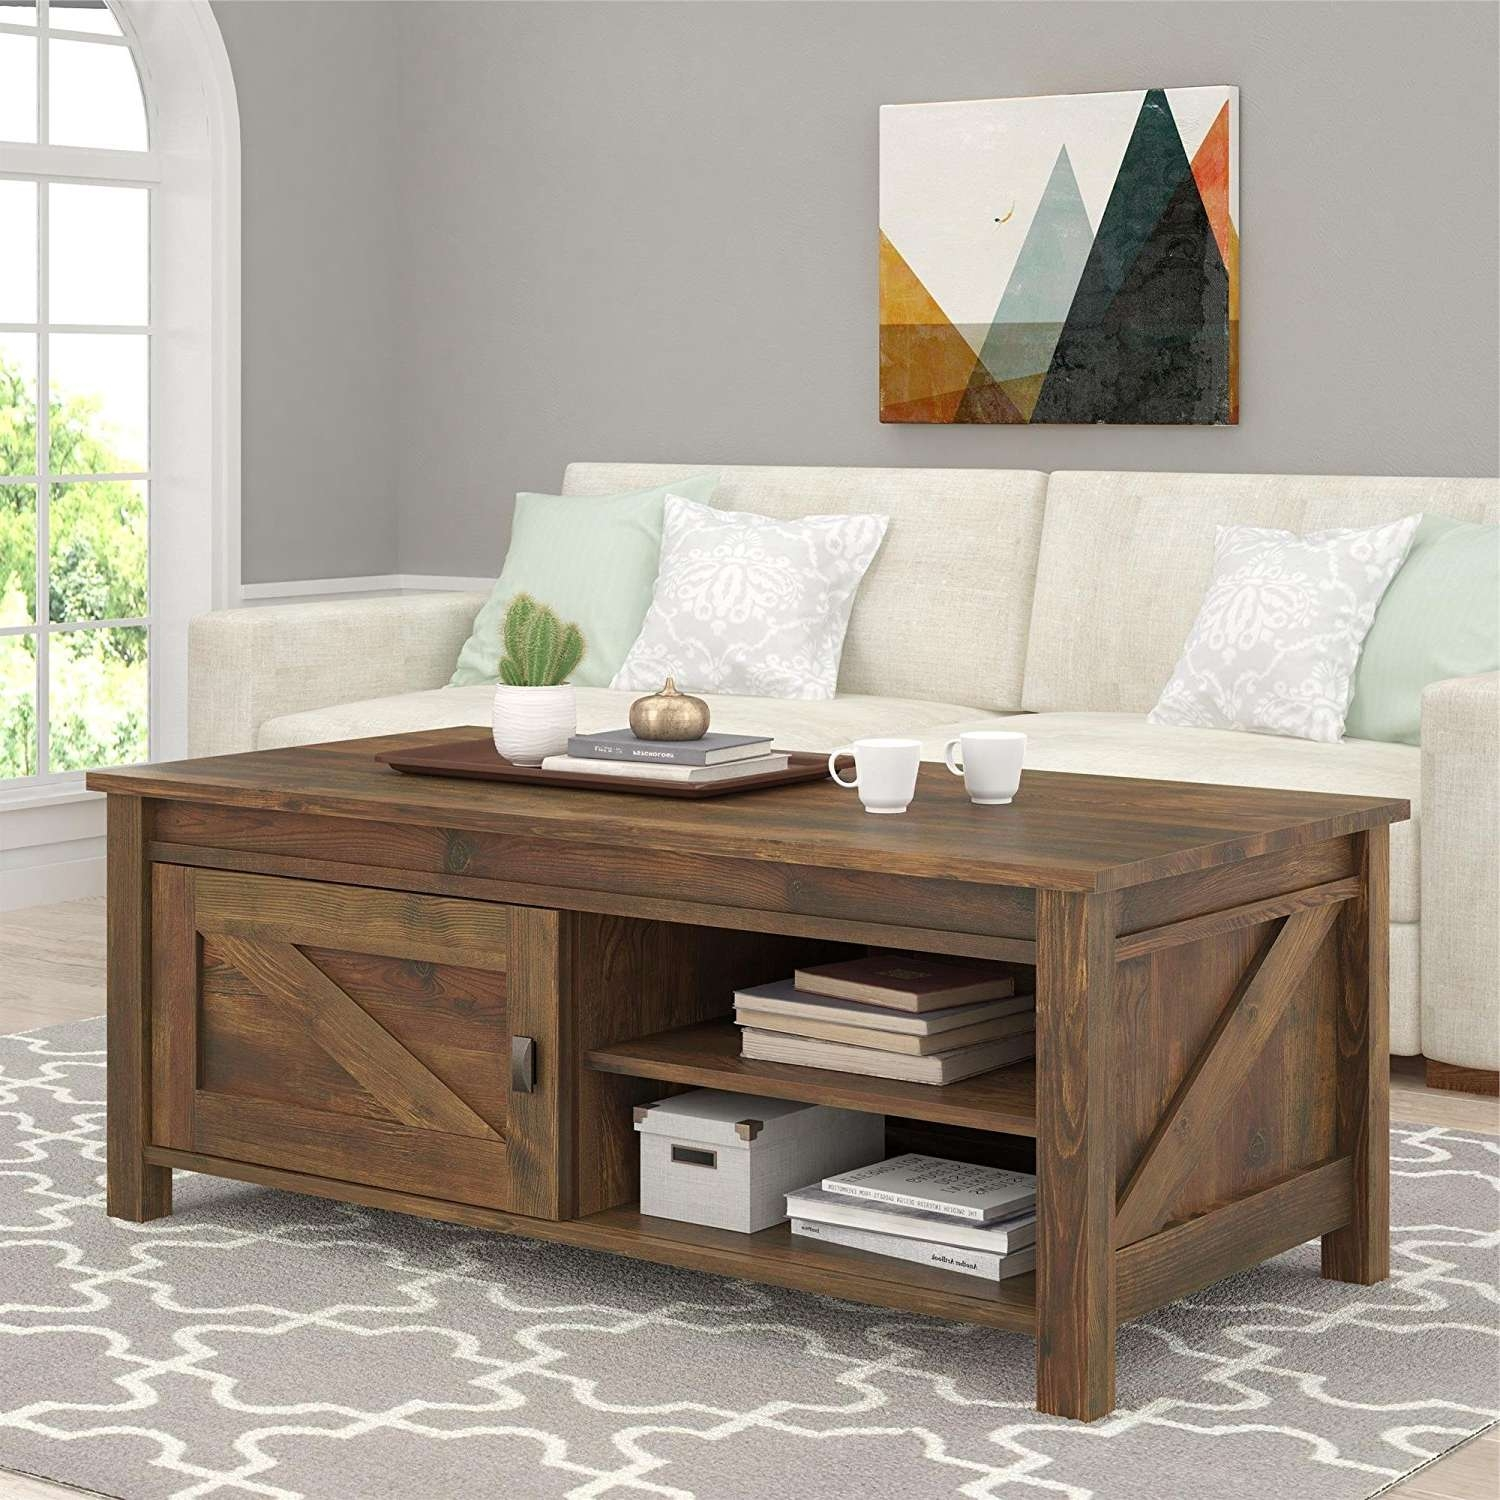 Coffee Table : Marvelous Tv Stand With Mount Unique Coffee Tables Intended For Coffee Tables And Tv Stands Matching (View 7 of 20)